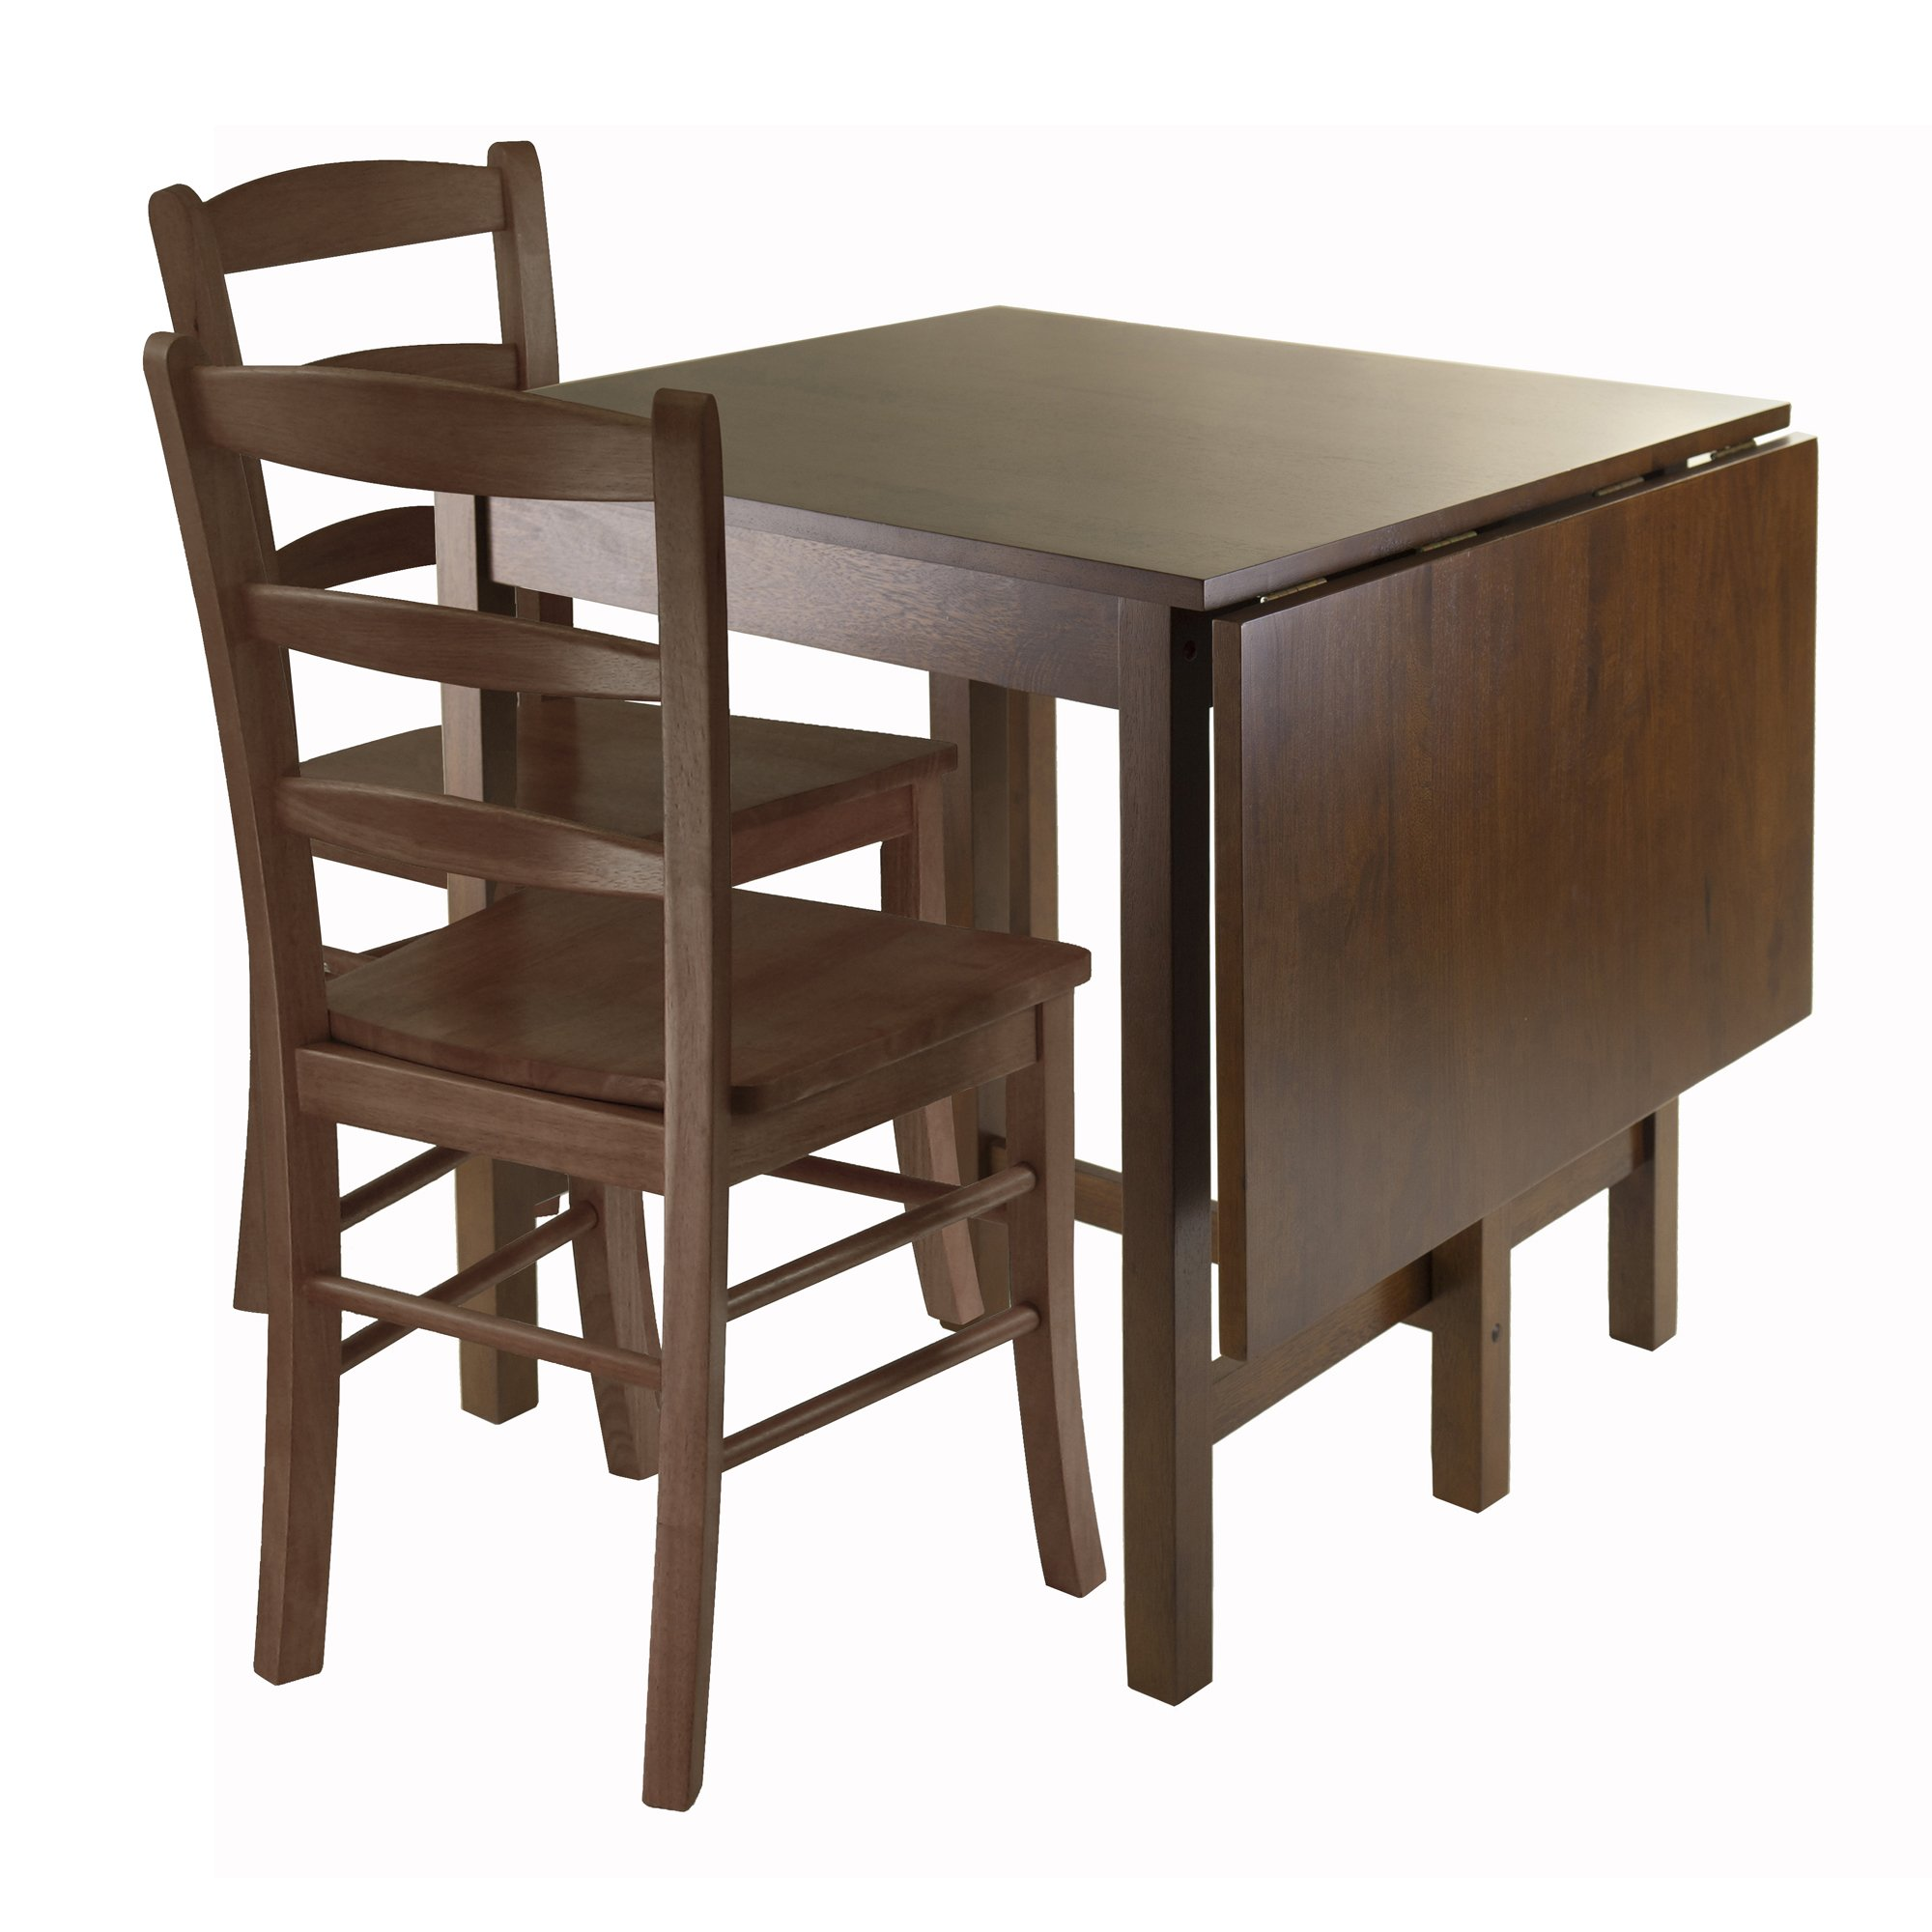 Winsome Lynden 3-Piece Dining Table with 2-Ladder Back Chairs by Winsome